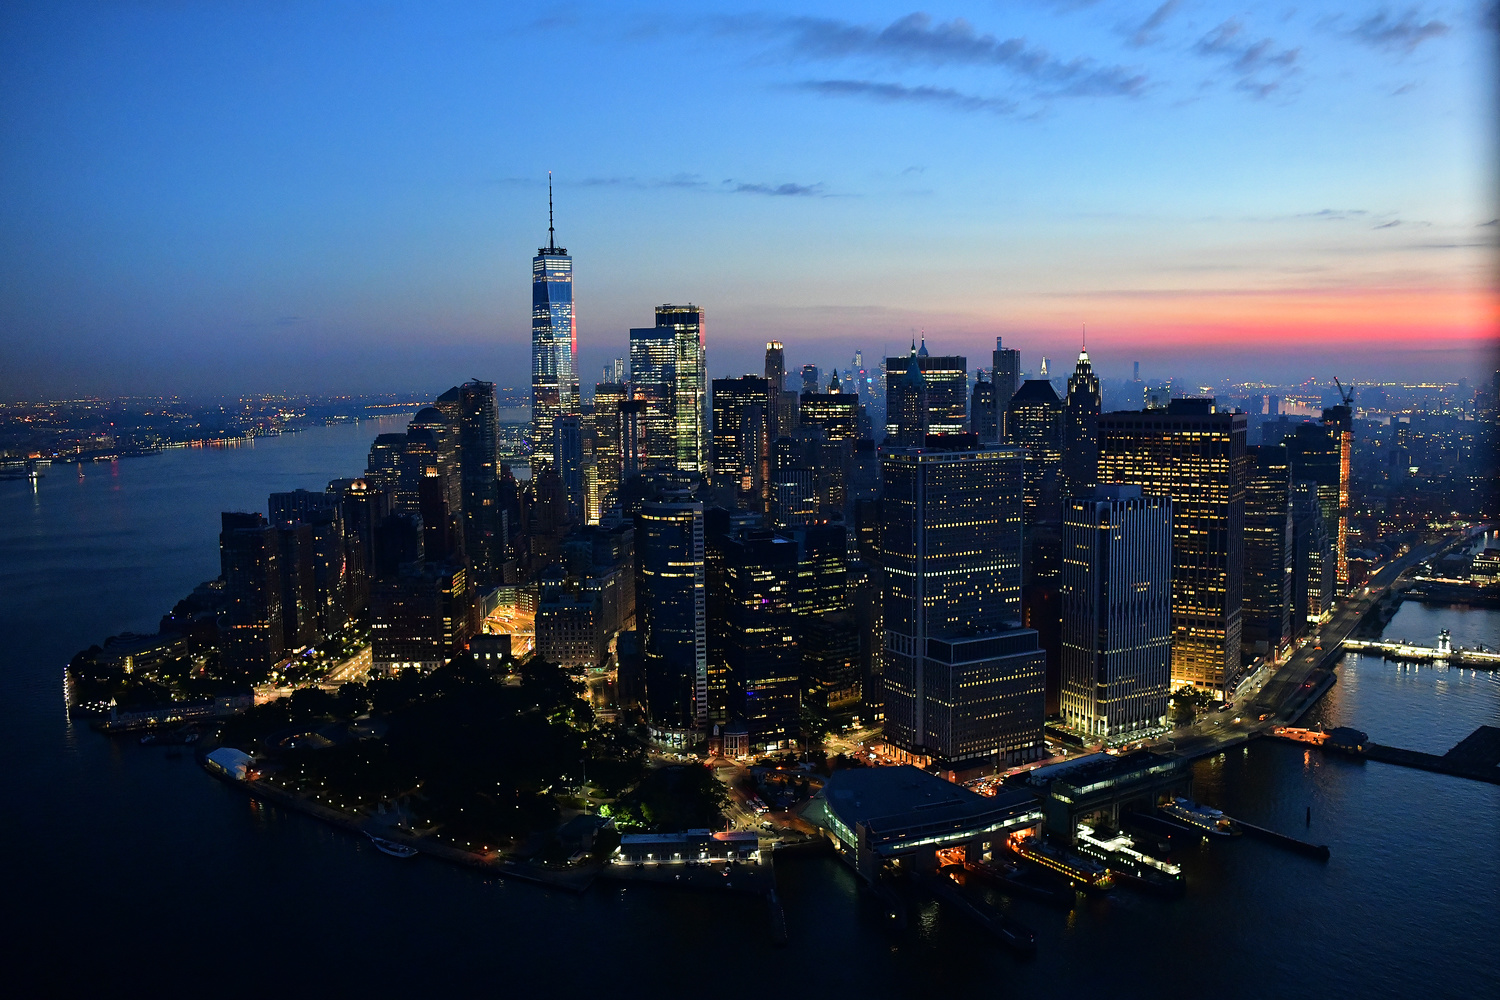 Manhattan Helicopter shot at dawn by Peter Massini